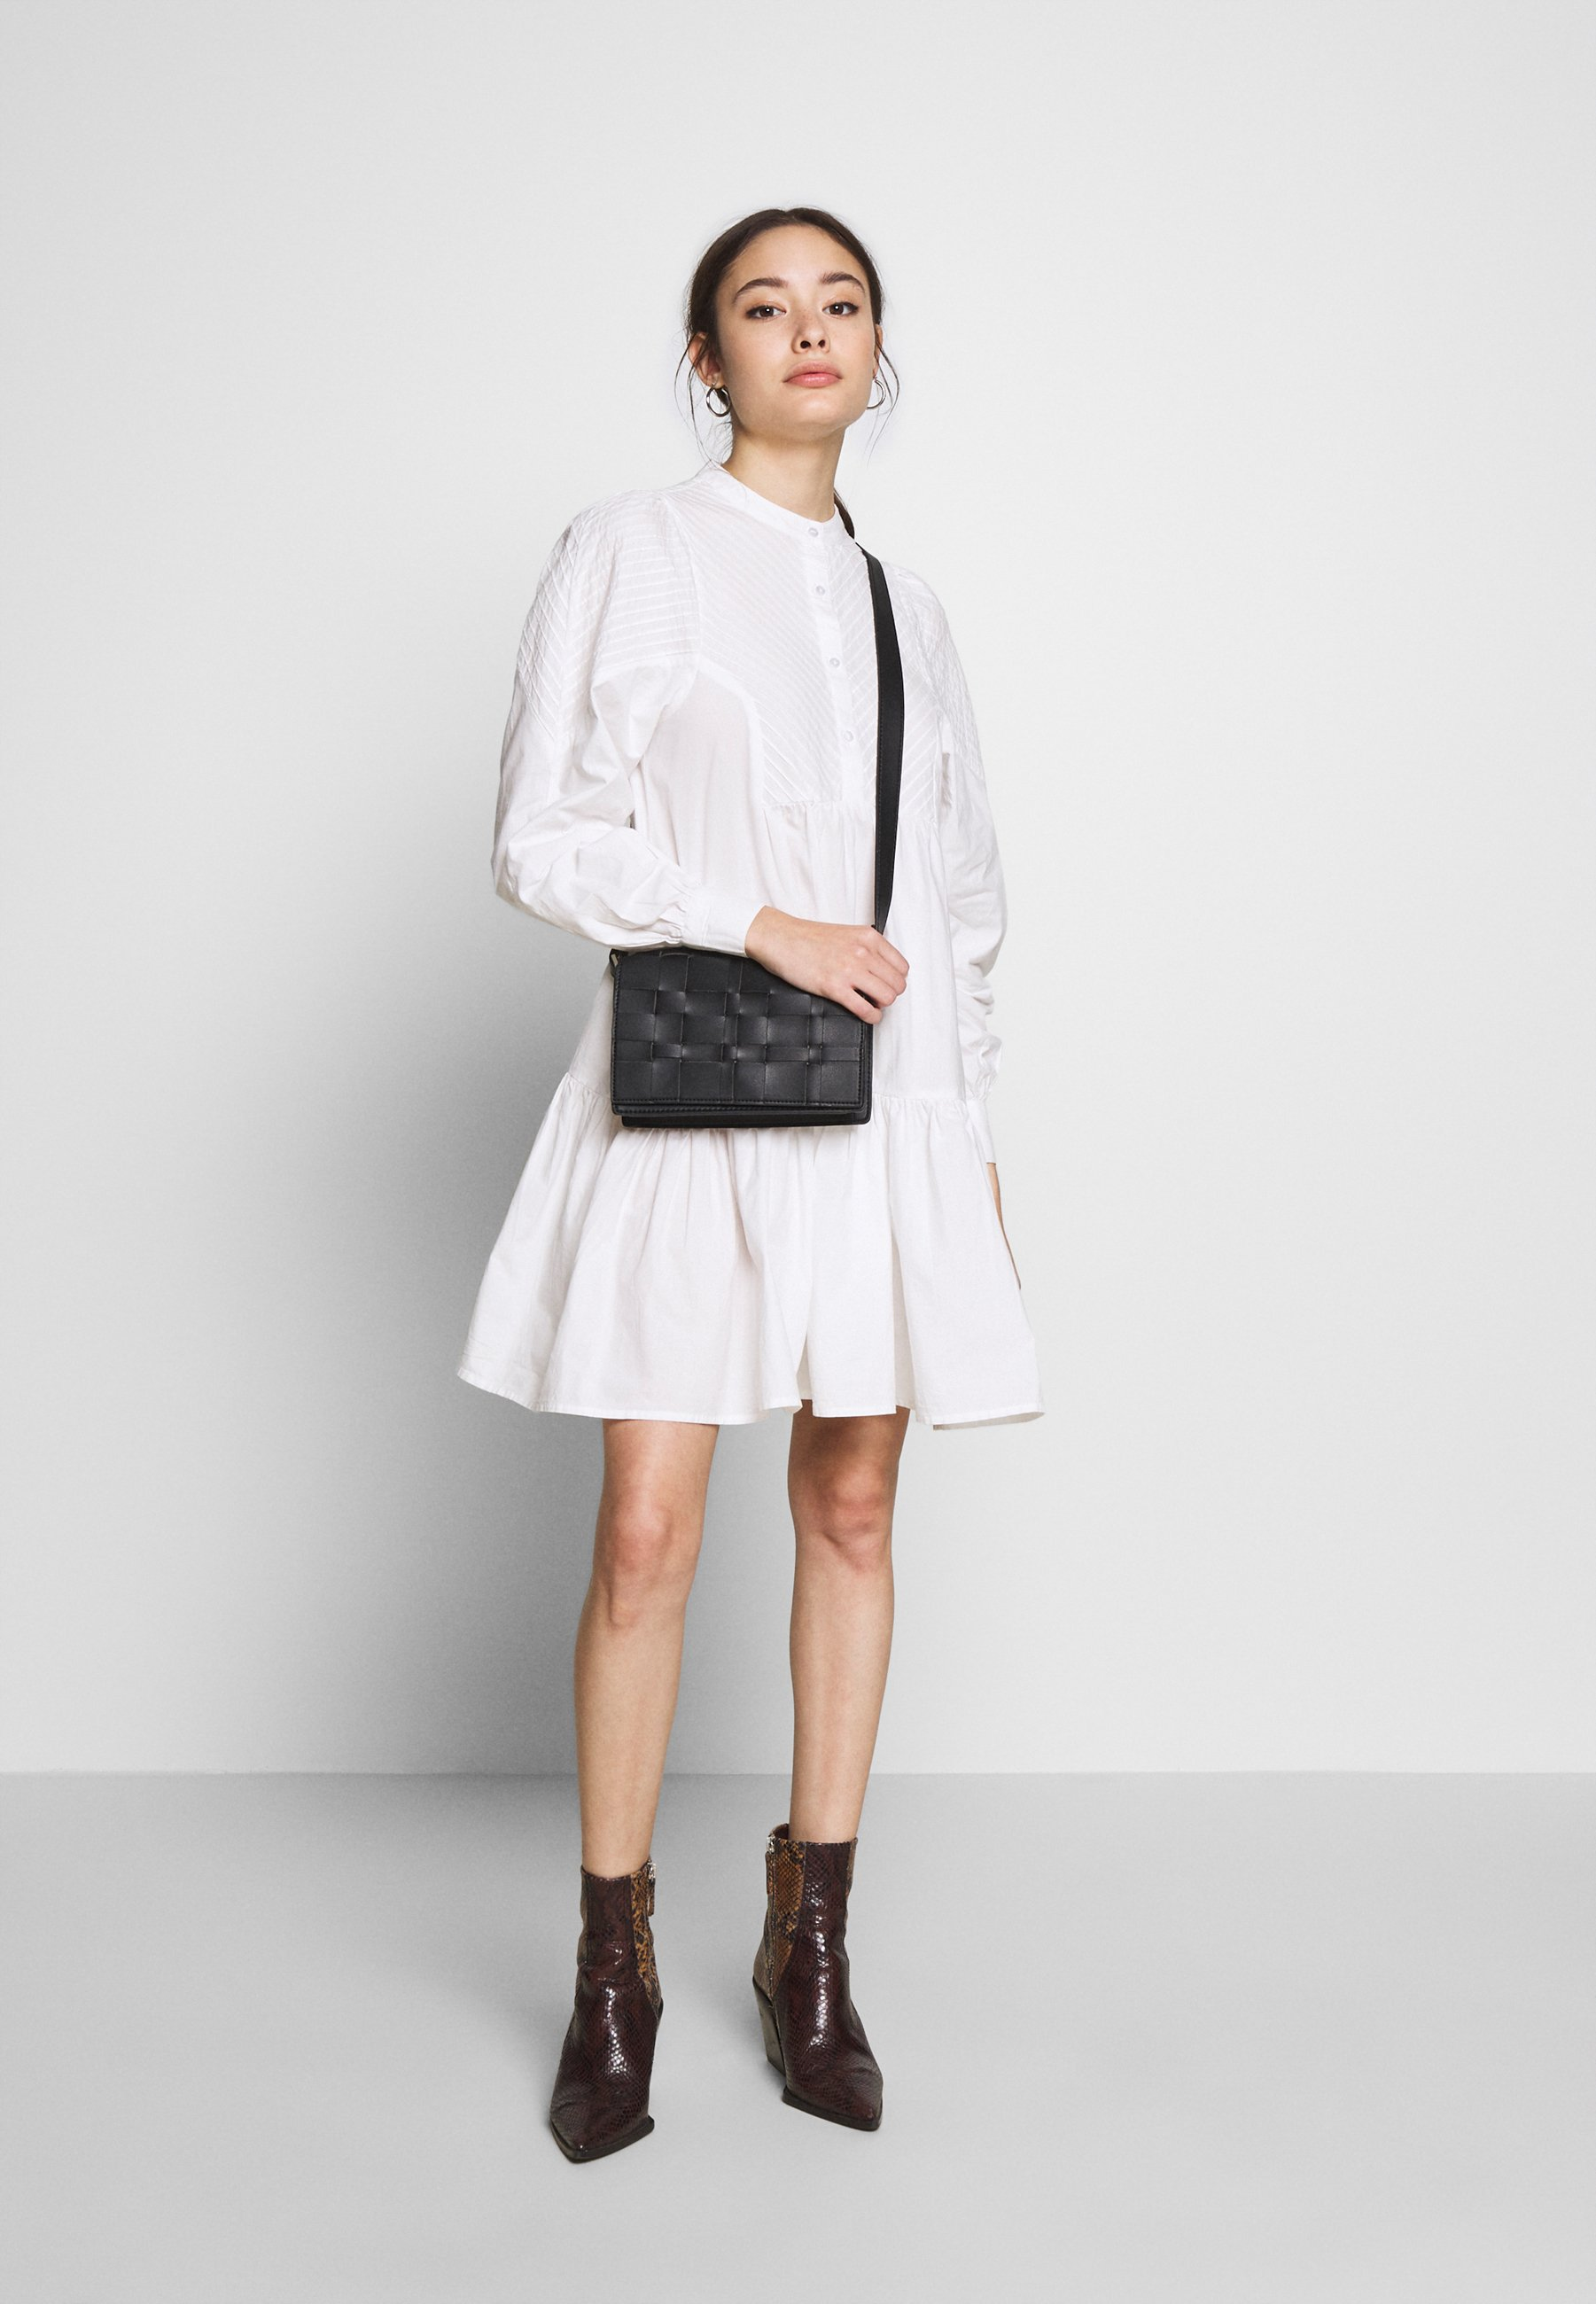 Object Petite Objalyssa Dress - Blousejurk White